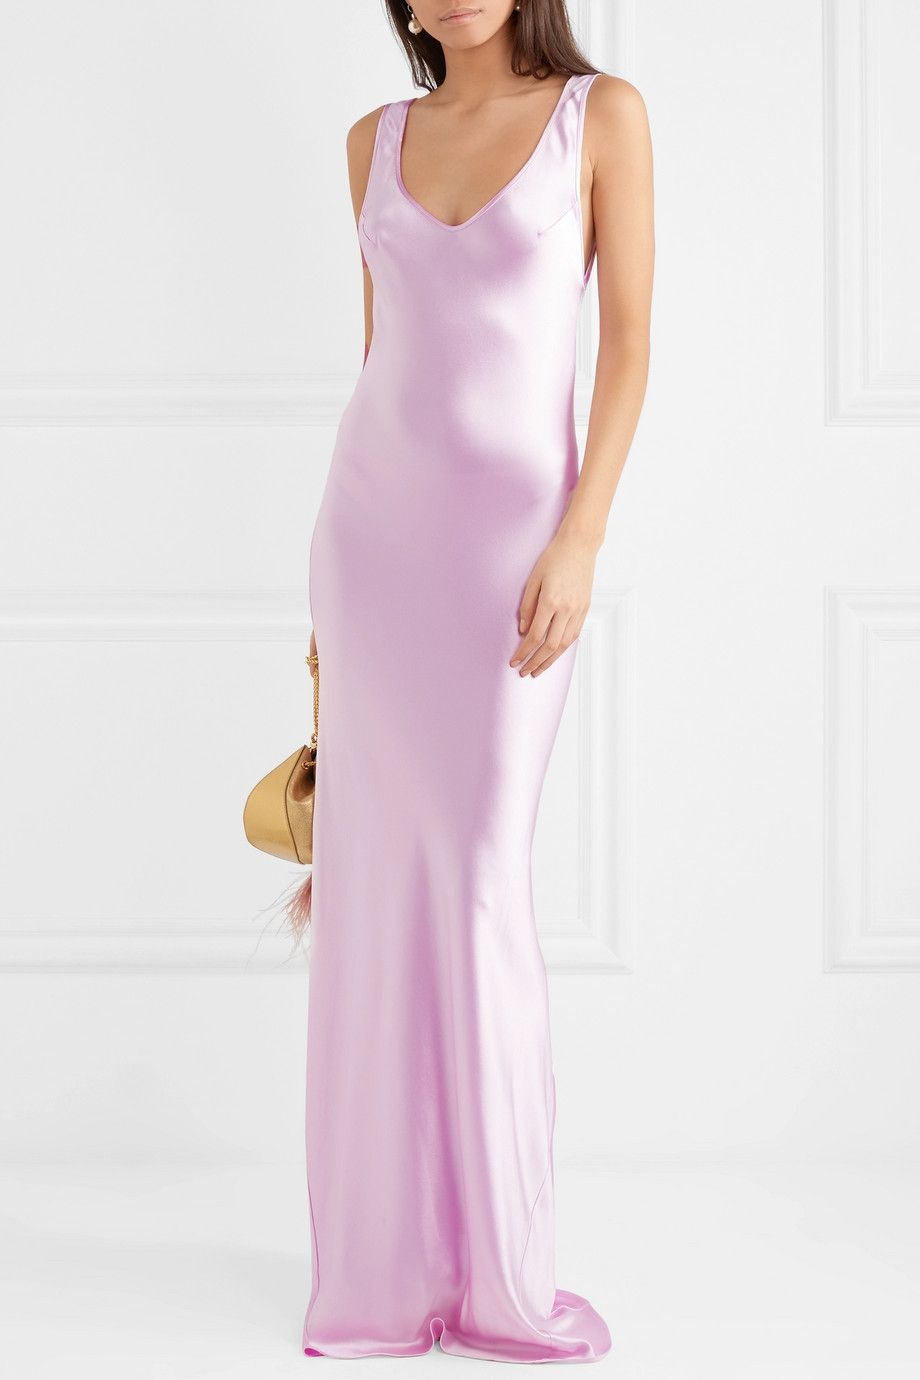 Valetta Silk-satin Maxi Dress - Lilac Galvan